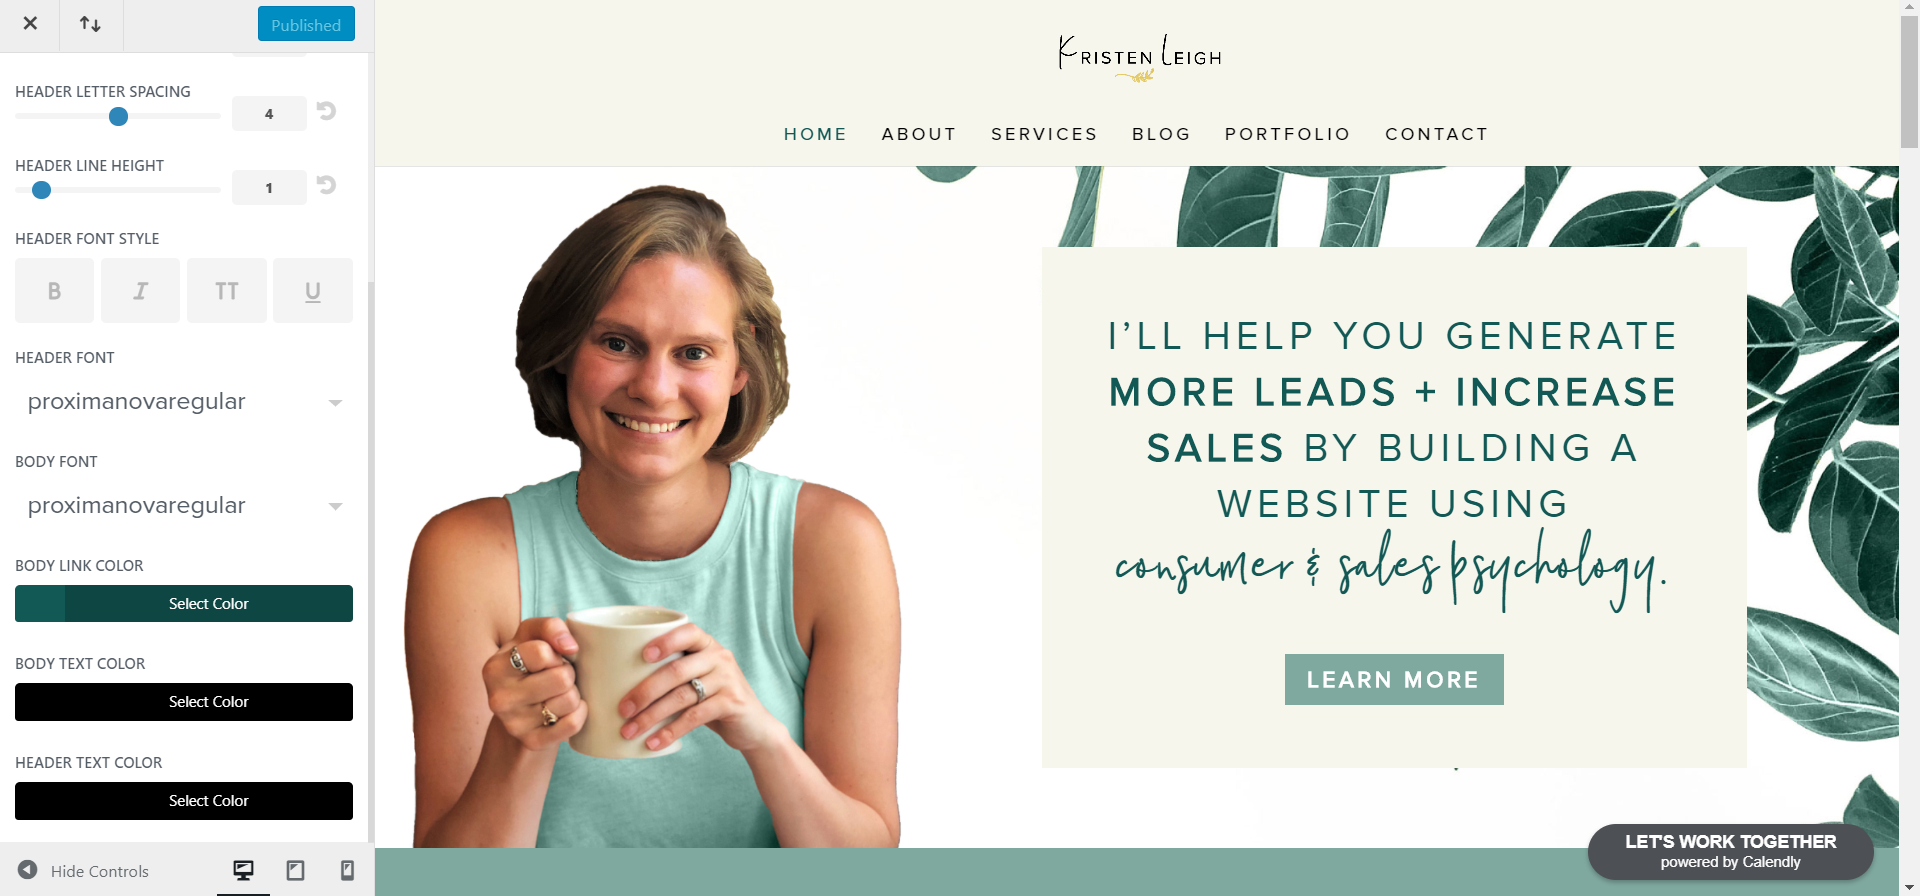 Kristen Leigh | Web Design Studio | How to Quickly Build a Divi Website | Typography Settings